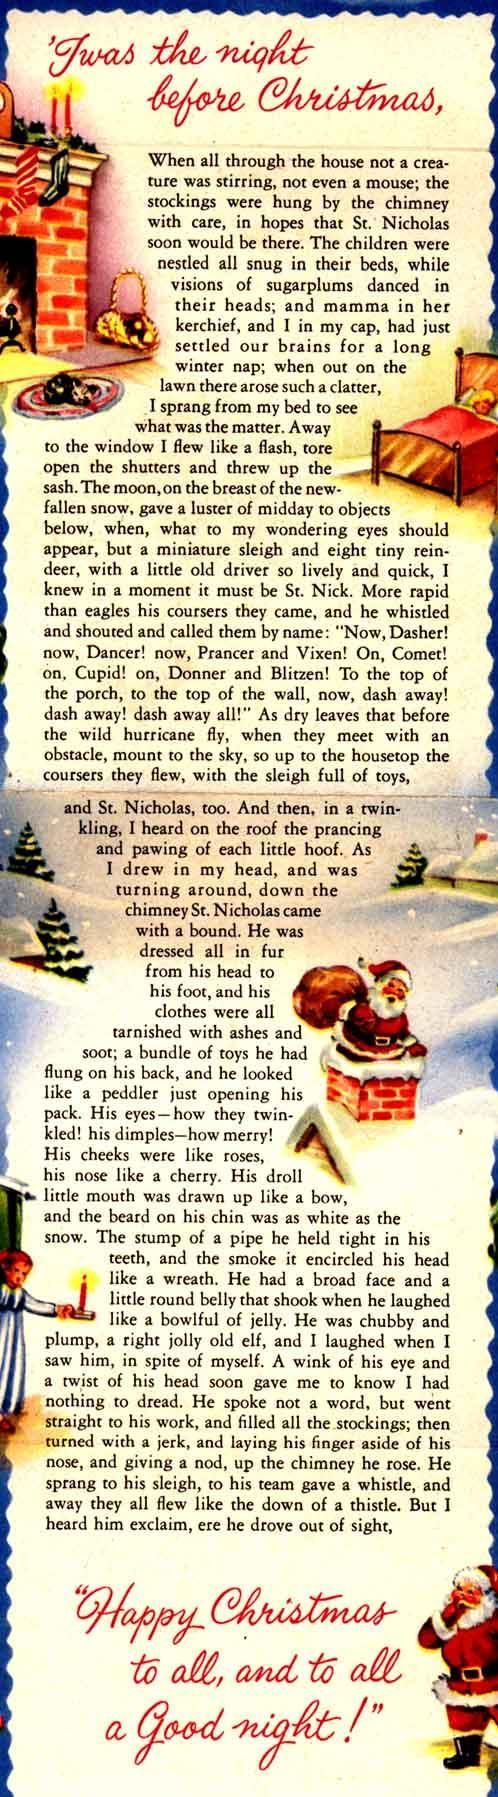 """twas the night before Christmas poem in a card form. Nice!"